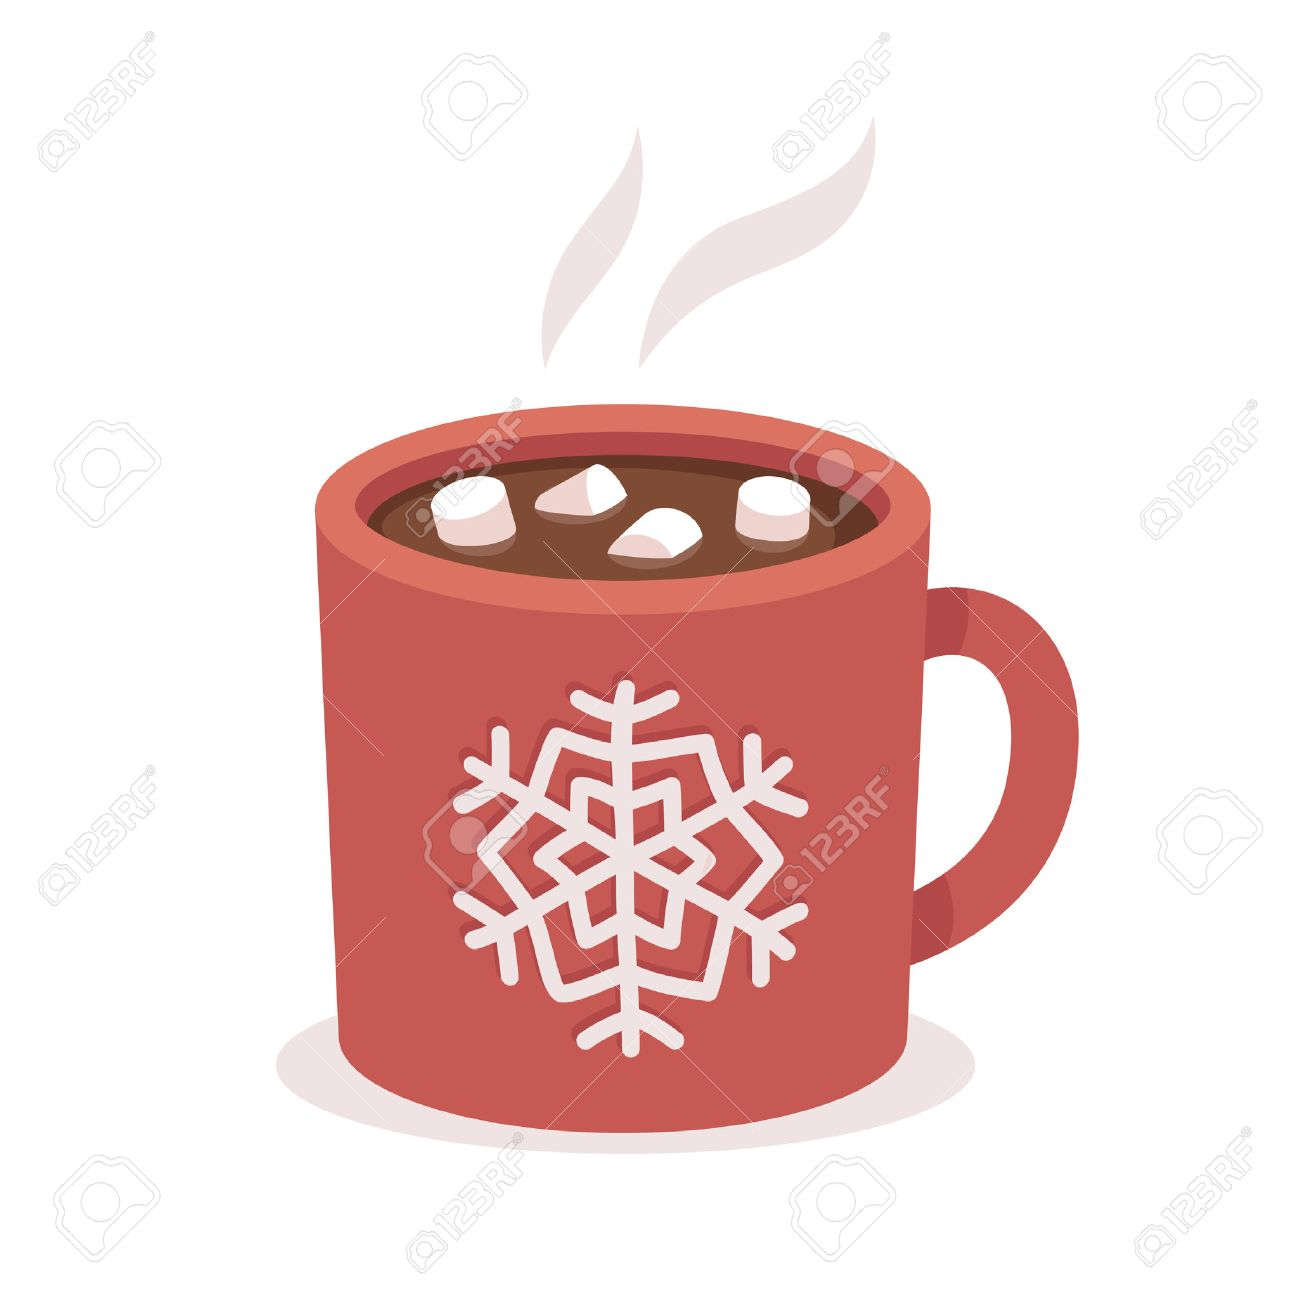 Hot Chocolate Cup With Marshmallows Red With Snowflake Ornament Christmas Greeting Card Design Element